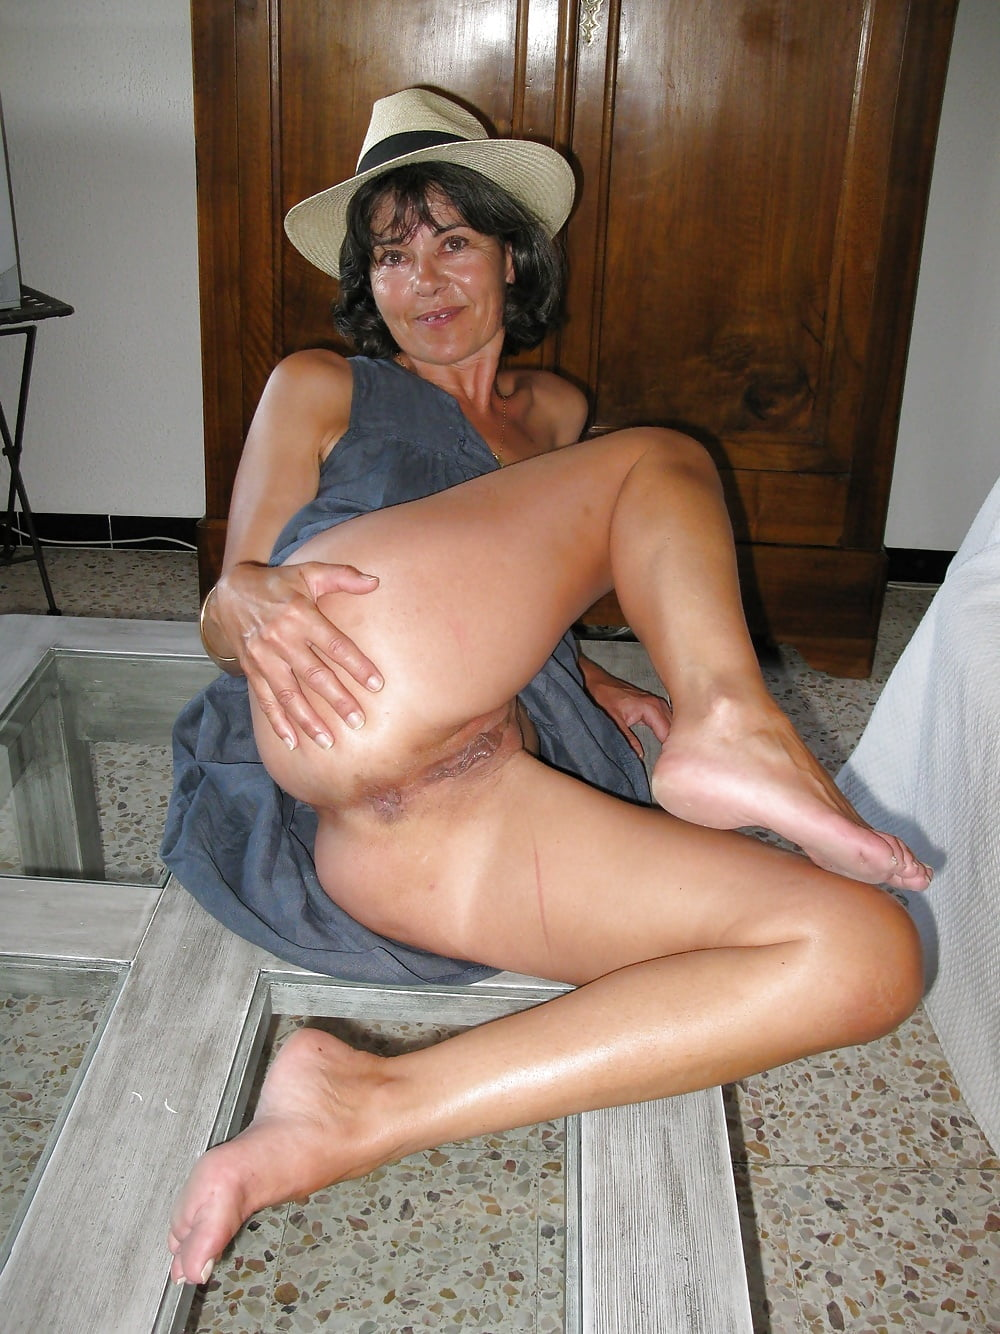 Nude Asian Granny Galleries